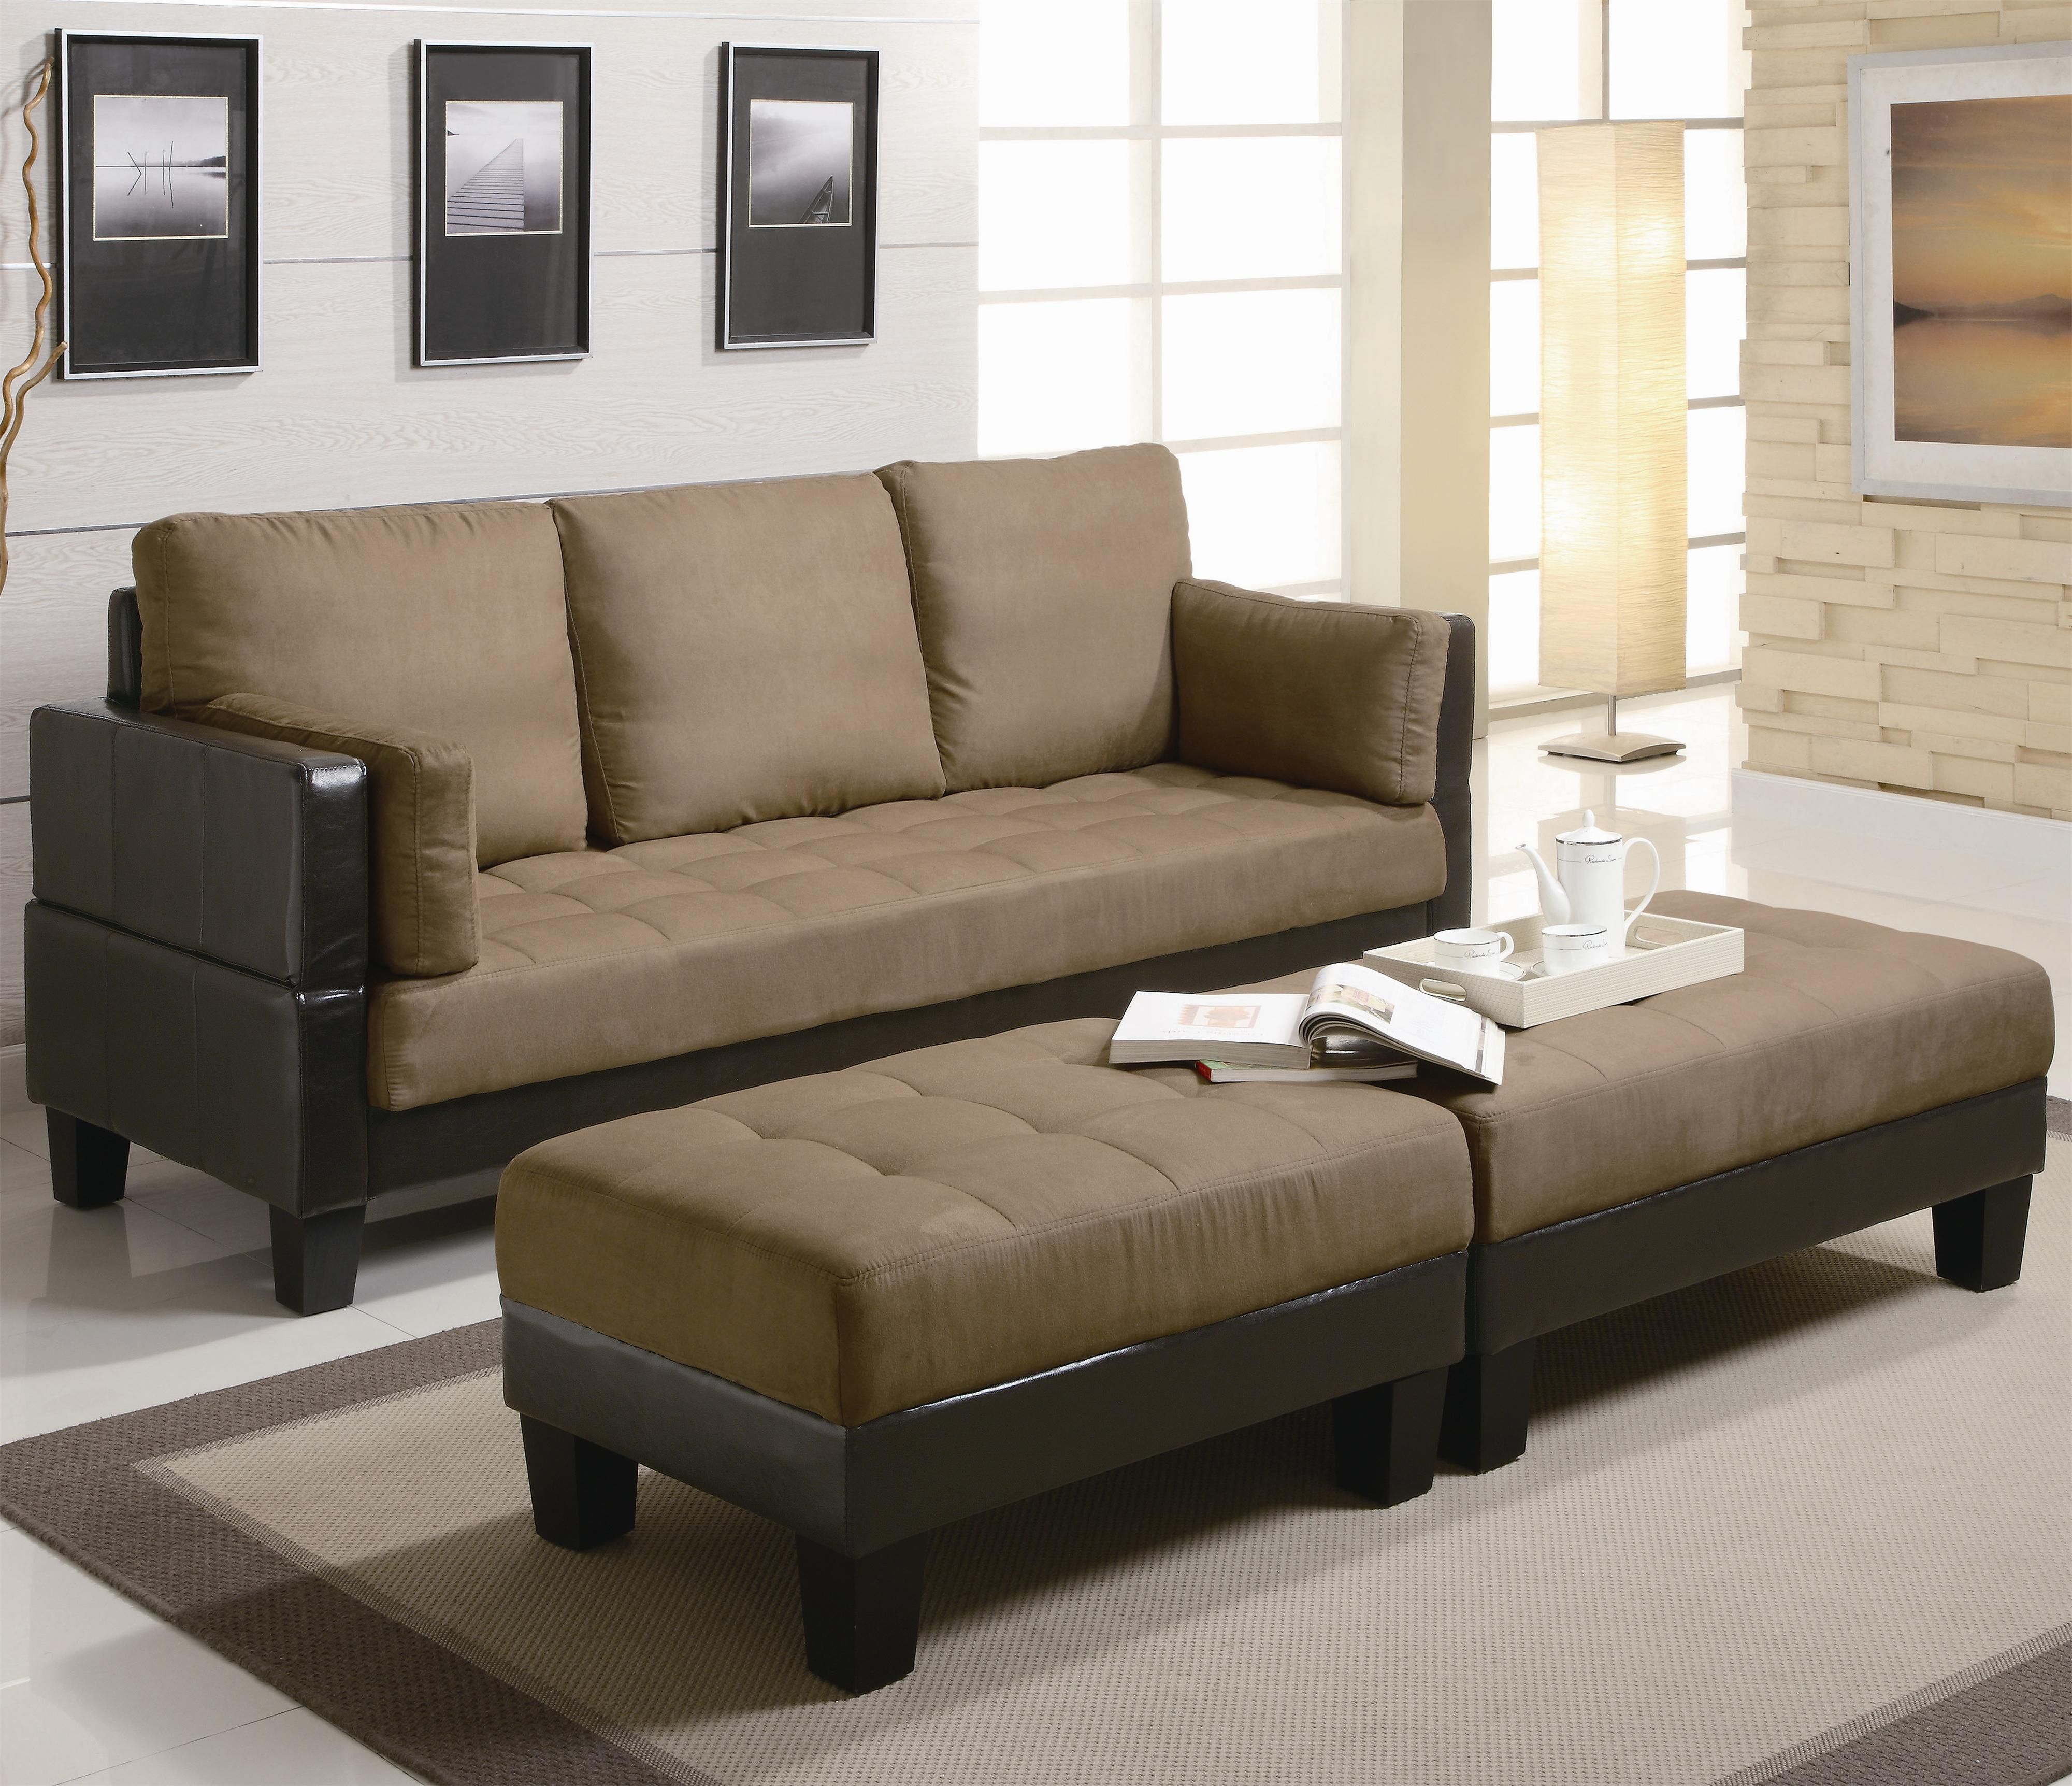 300160A Fulton Contemporary Sofa Bed Group with 2 Ottomans